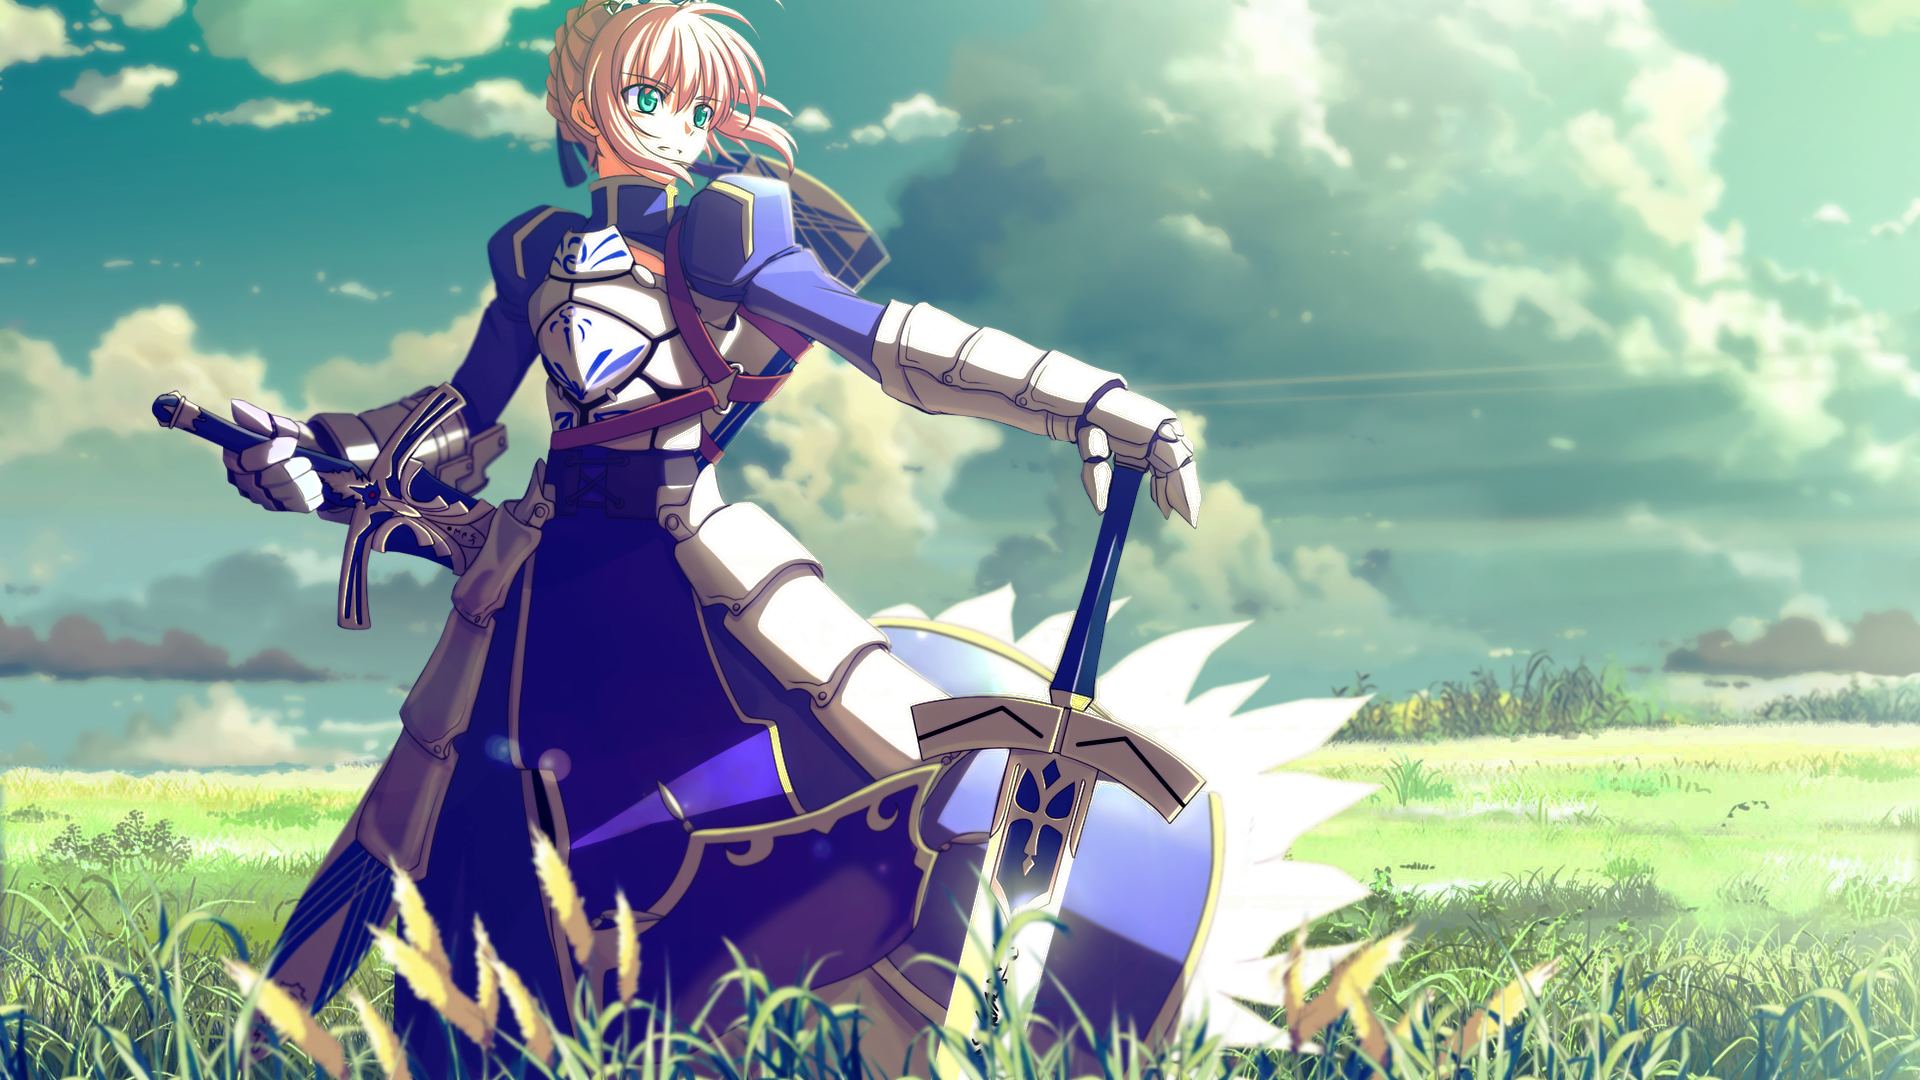 Download Saber Fate Stay Night Wallpaper 1920x1080 | Full HD